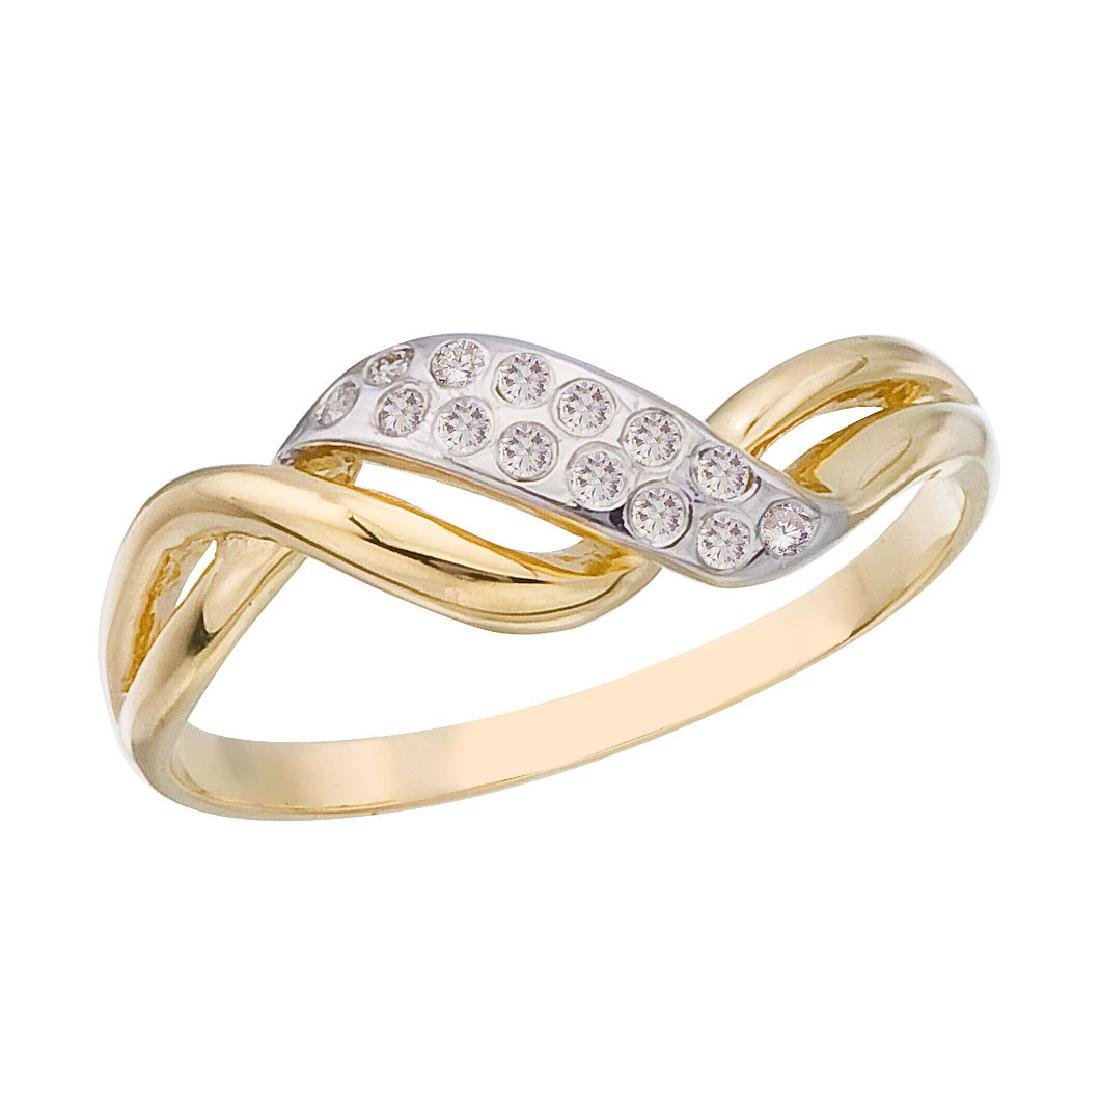 Certified 14K Yellow Gold and Diamond Promise Ring 0.07